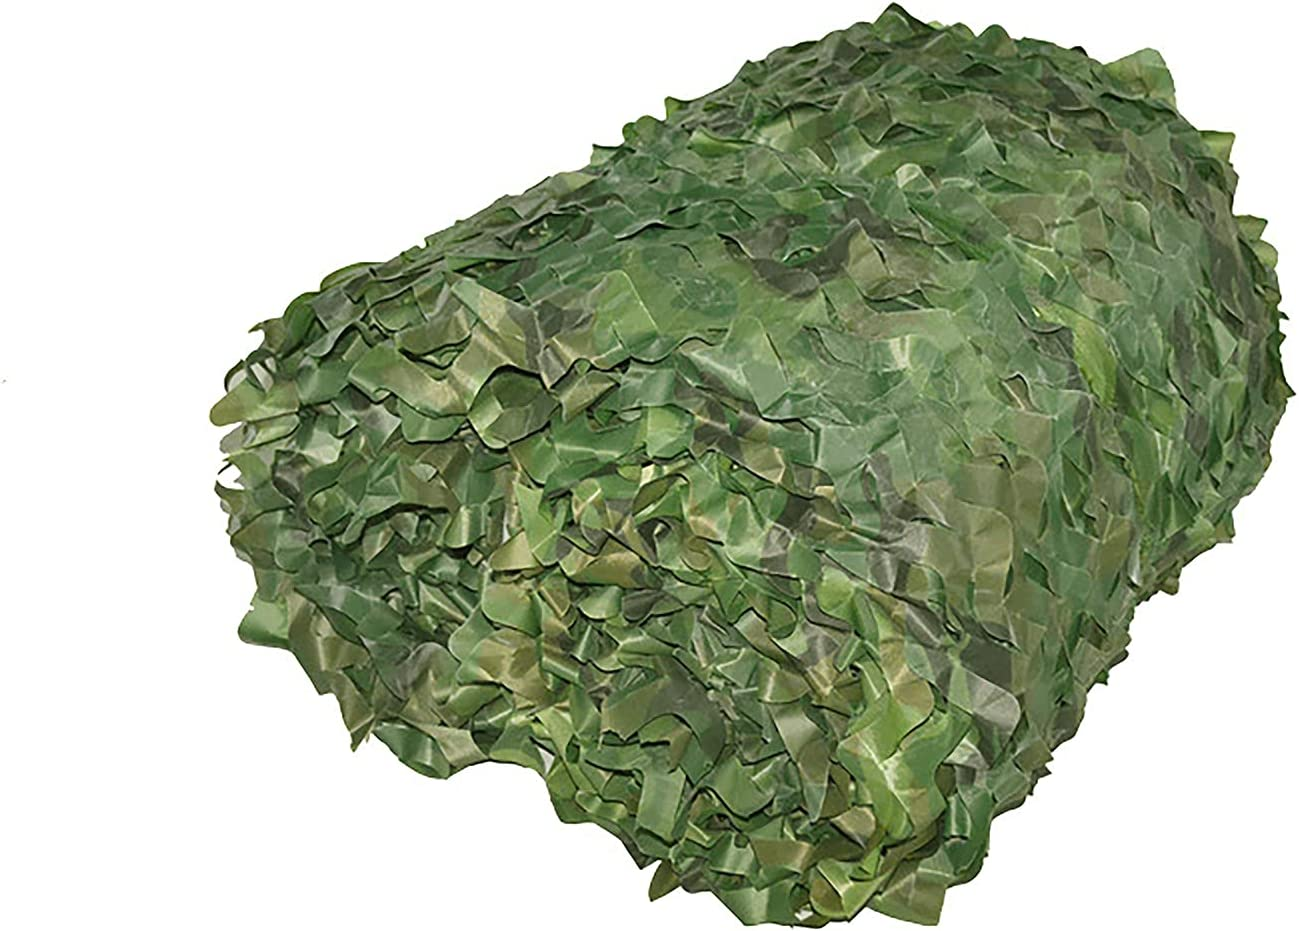 ZXCVASDF Camo Netting Camouflage Net M Sales results No. 1 Blind Military Limited price sale Hunting